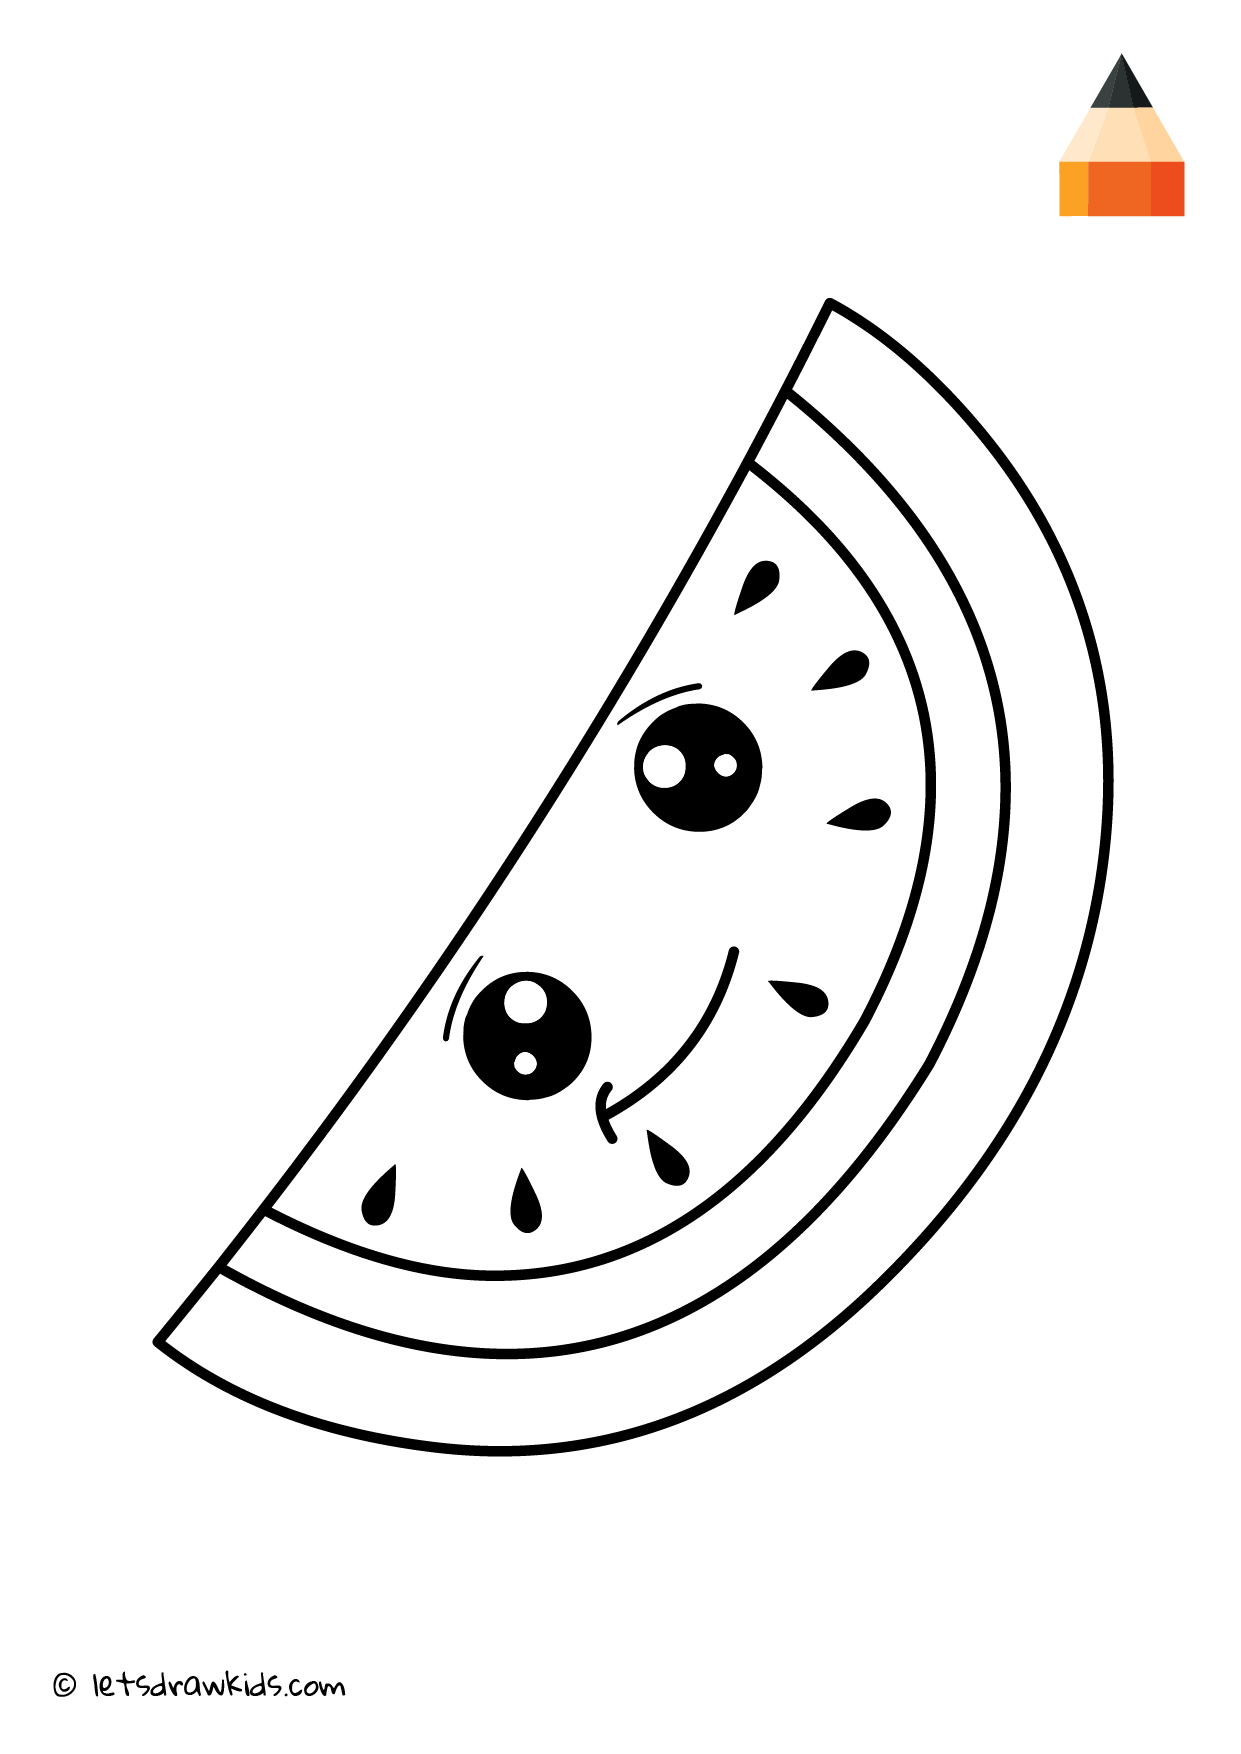 Coloring Page Cute Watermelon Drawings Coloring Pages Cute Watermelon